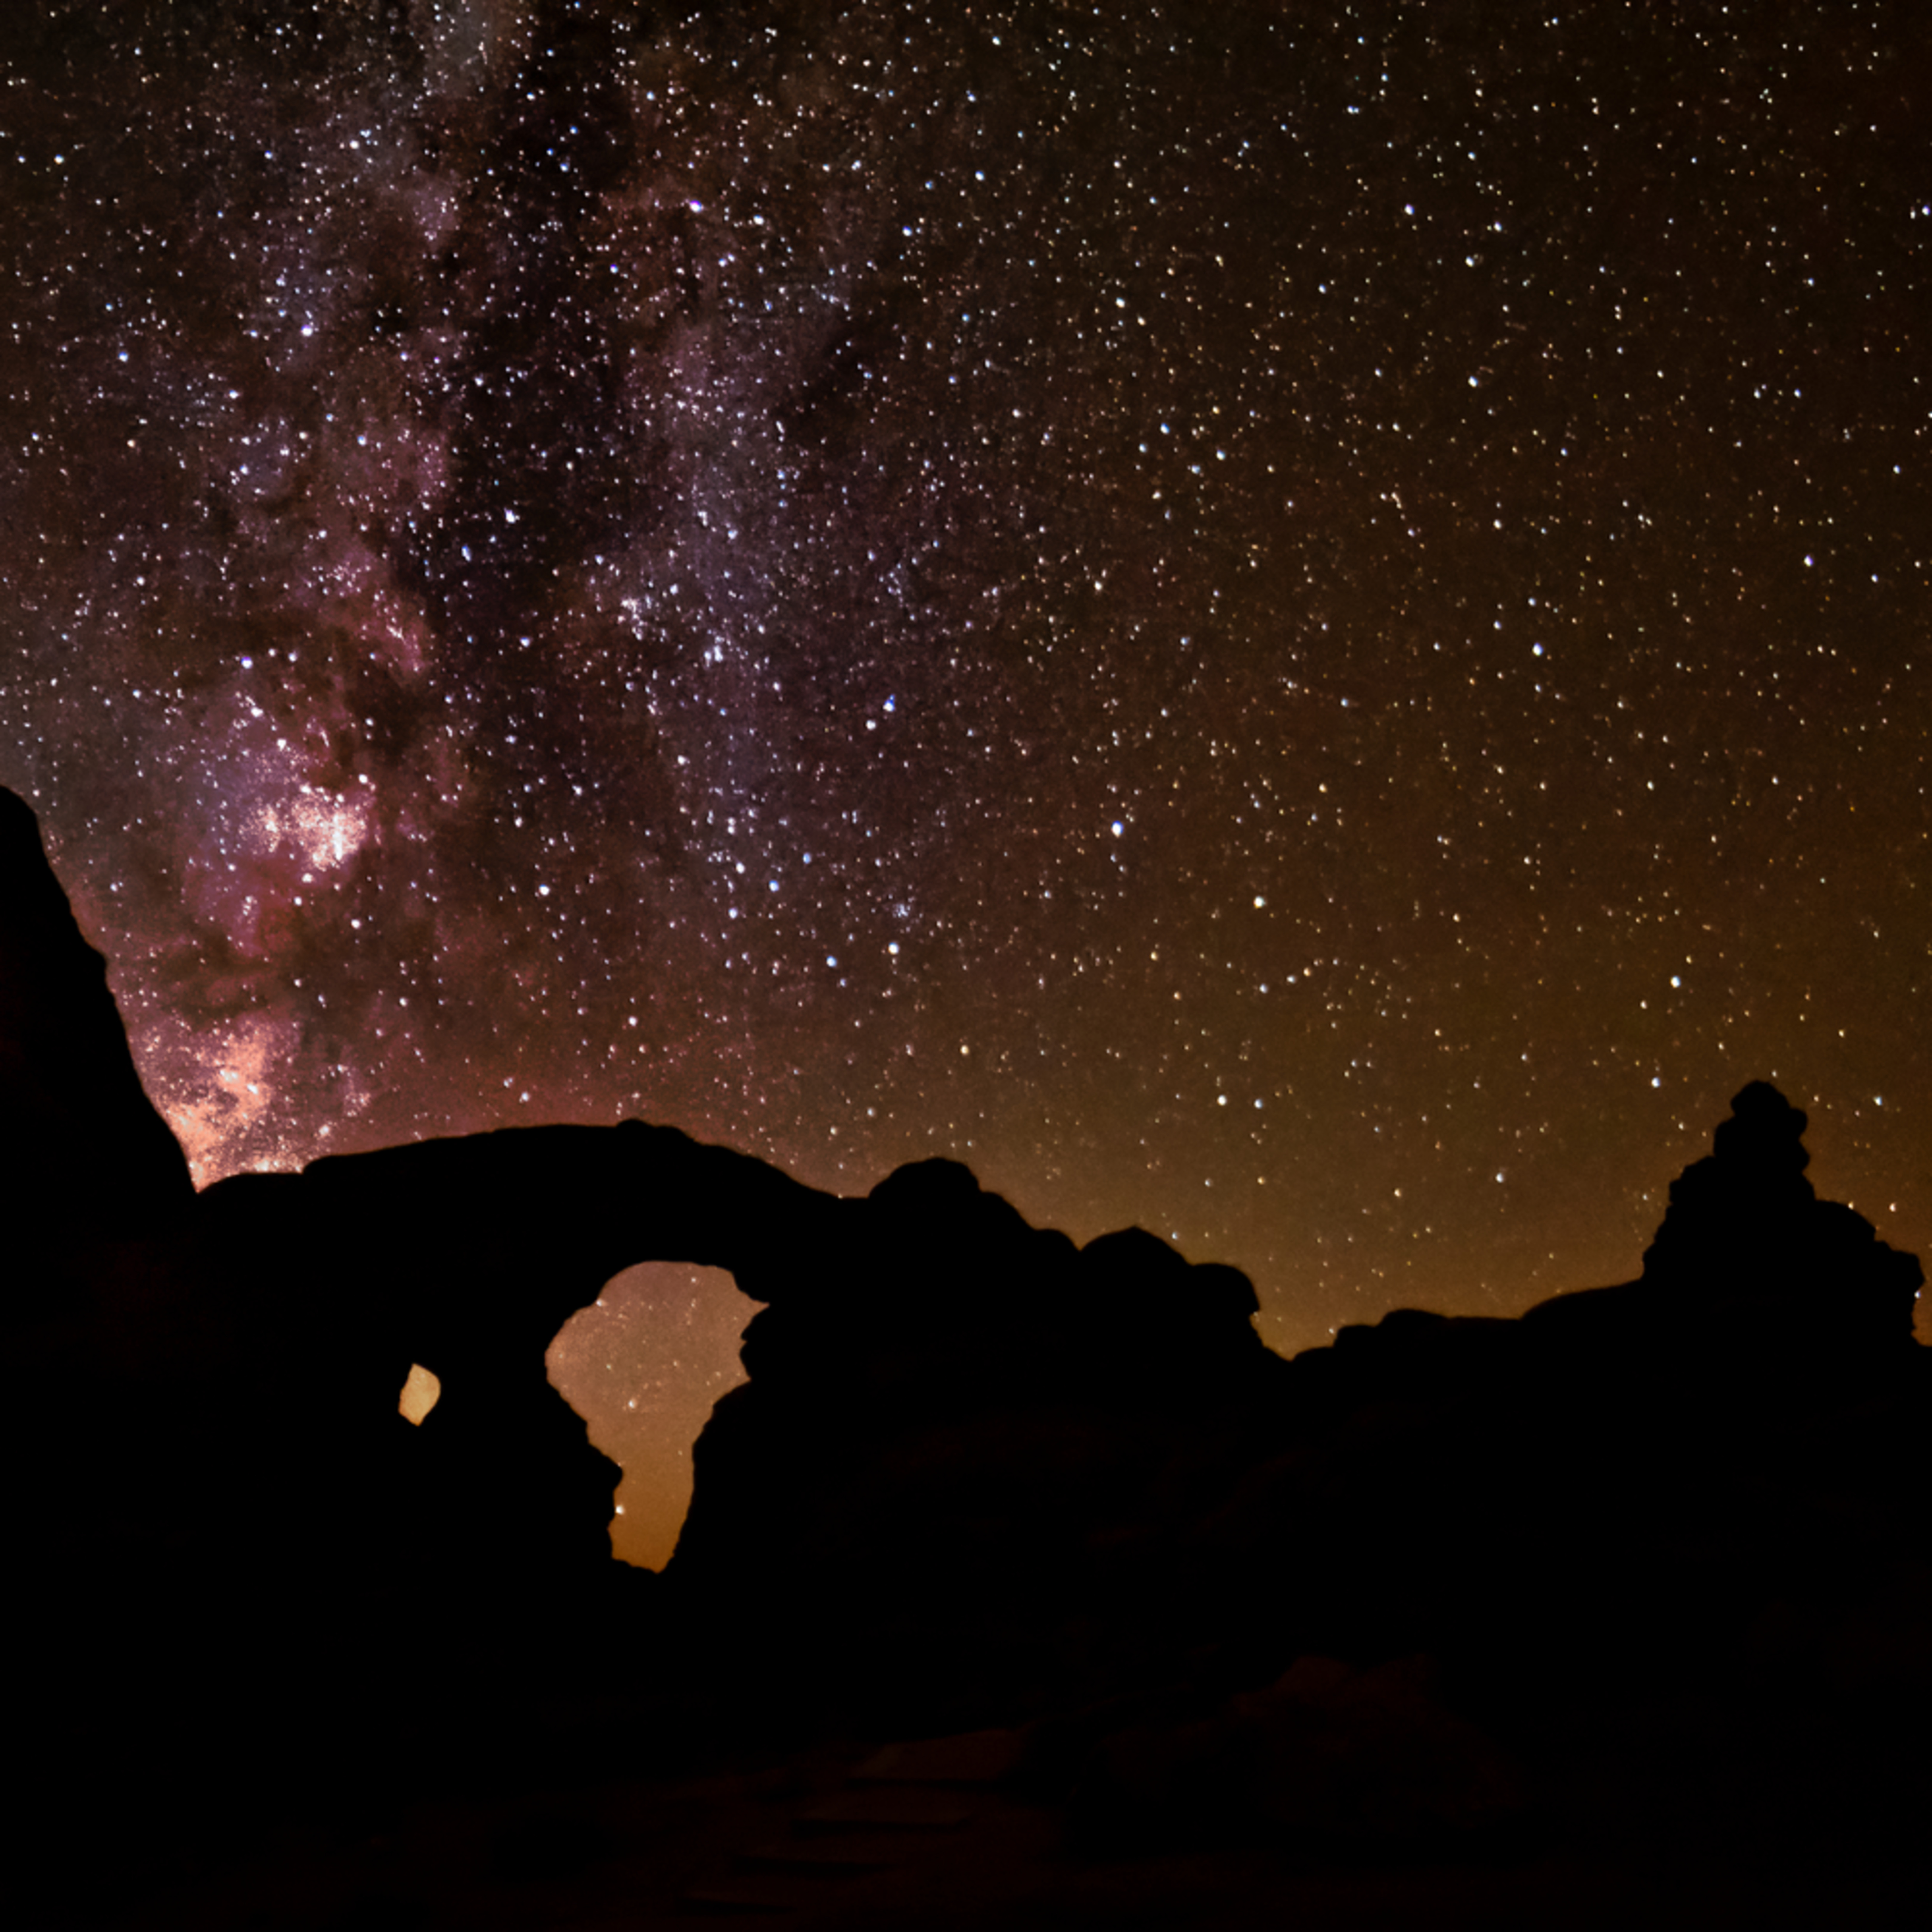 Andy crawford photography arches national park turret arch 181105 001 jsw922